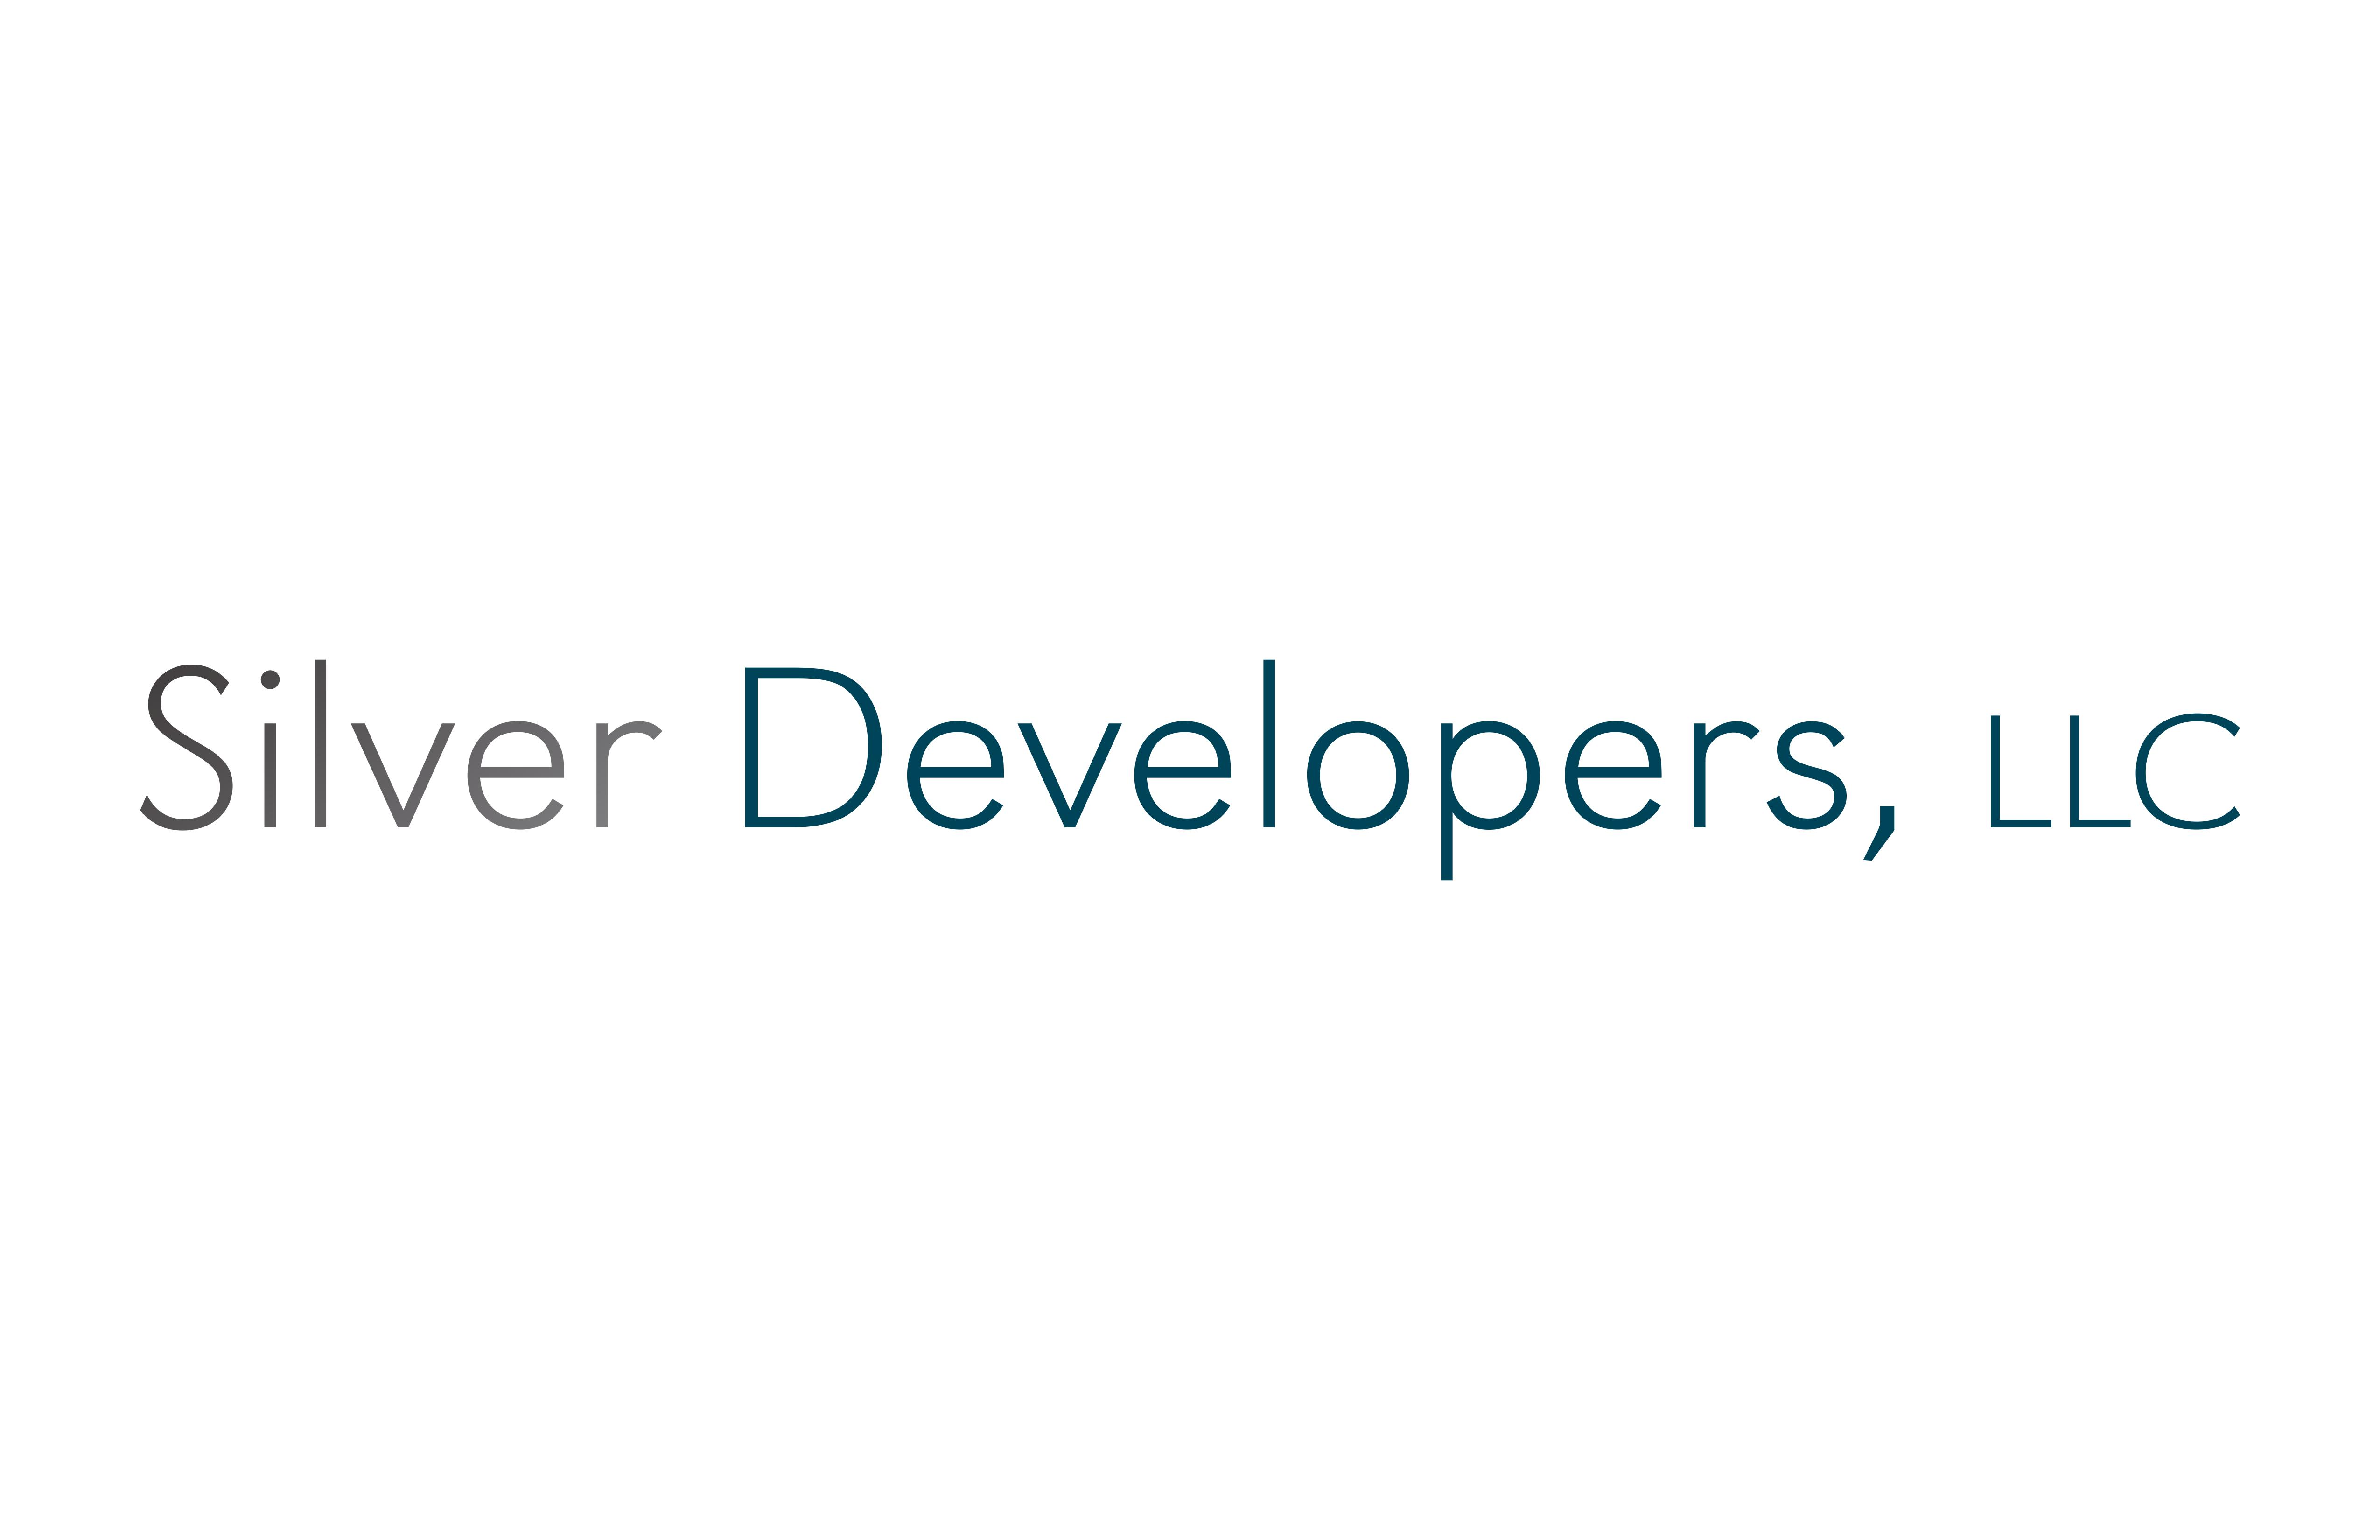 Sponsor Silver Developers